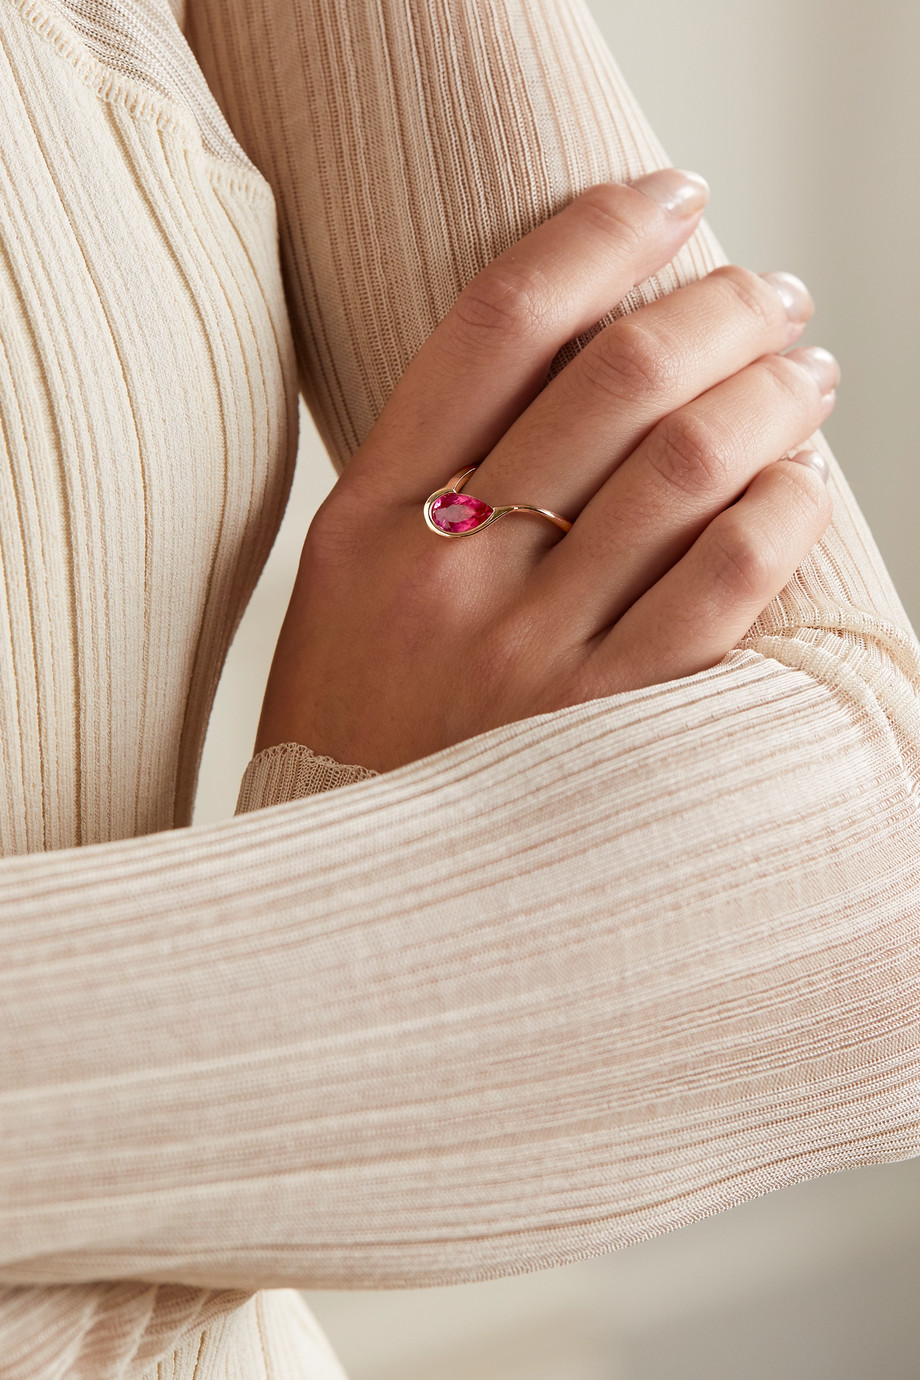 Fernando Jorge Ignite 18-karat rose gold rubellite ring